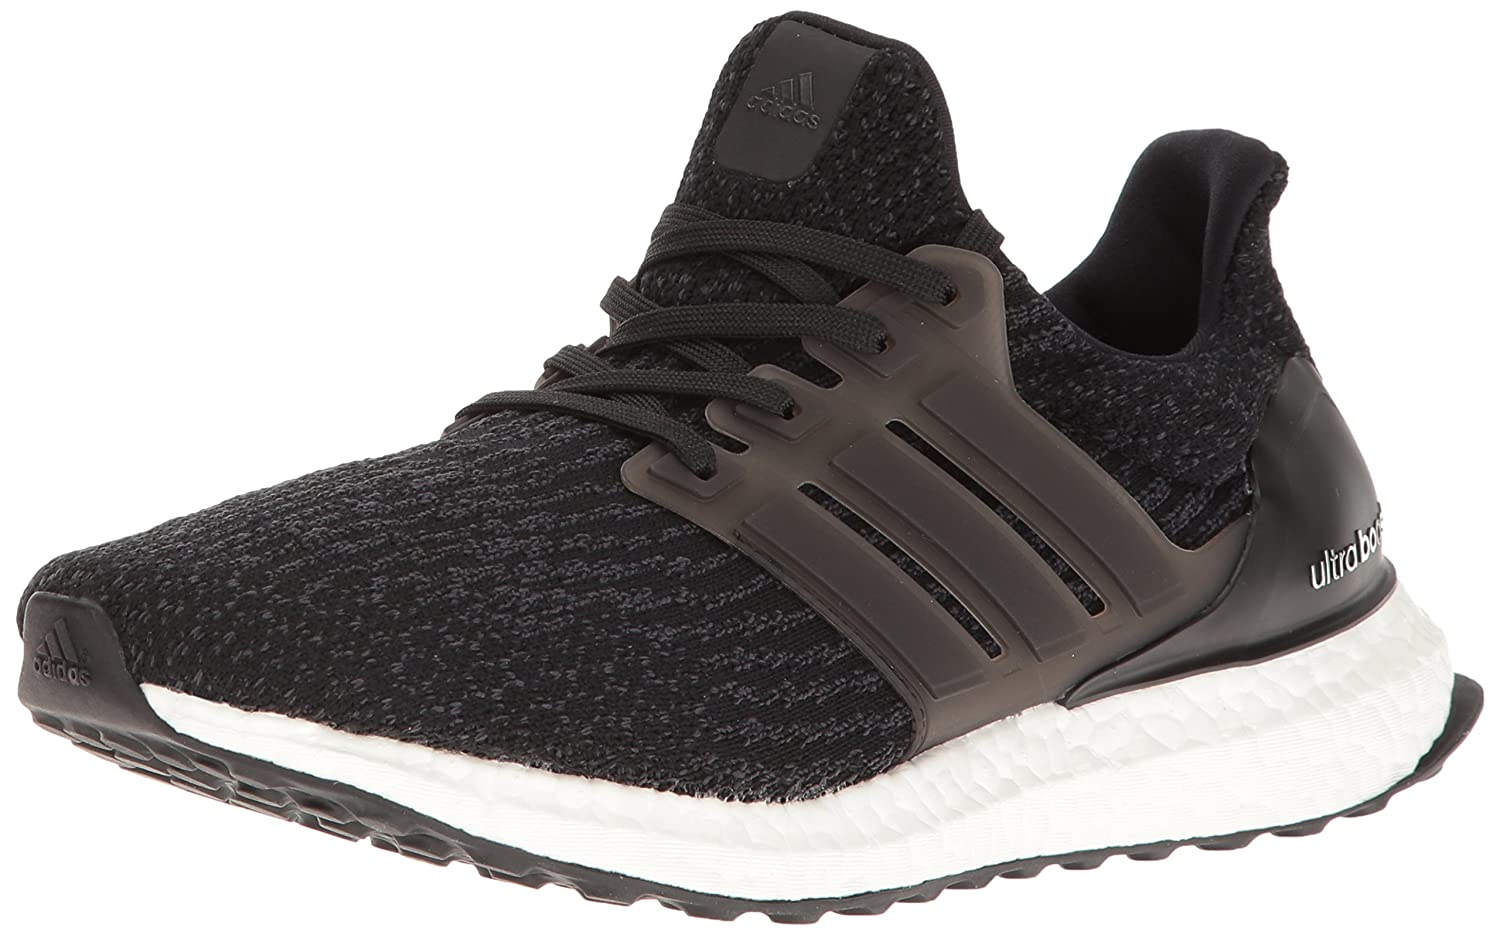 Black Black Dark Shale Adidas Performance Women's Ultraboost